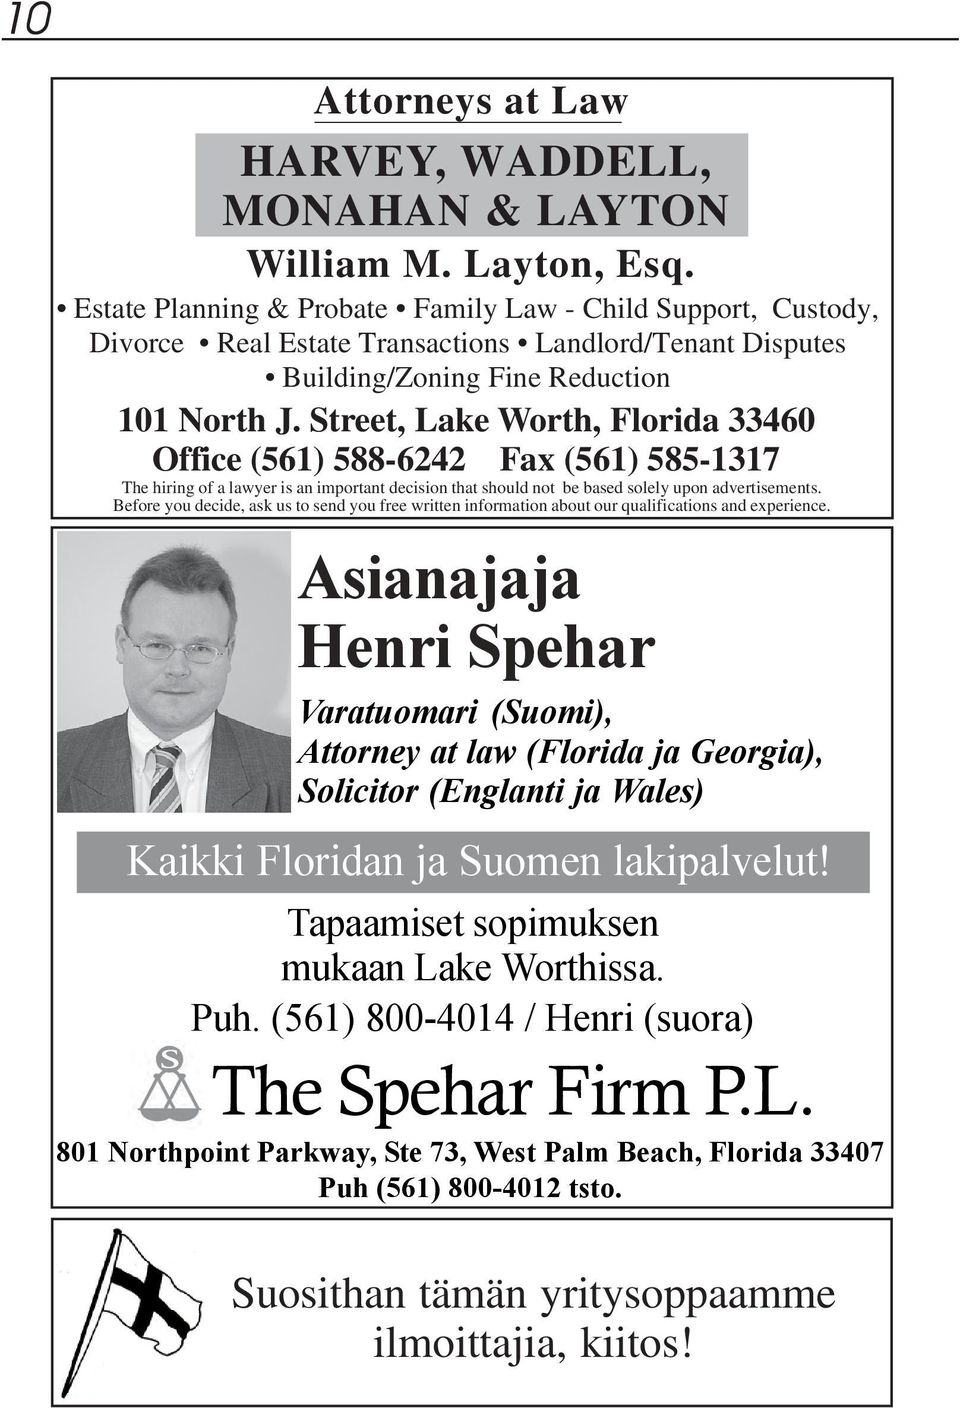 Street, Lake Worth, Florida 33460 Office (561) 588-6242 Fax (561) 585-1317 The hiring of a lawyer is an important decision that should not be based solely upon advertisements.